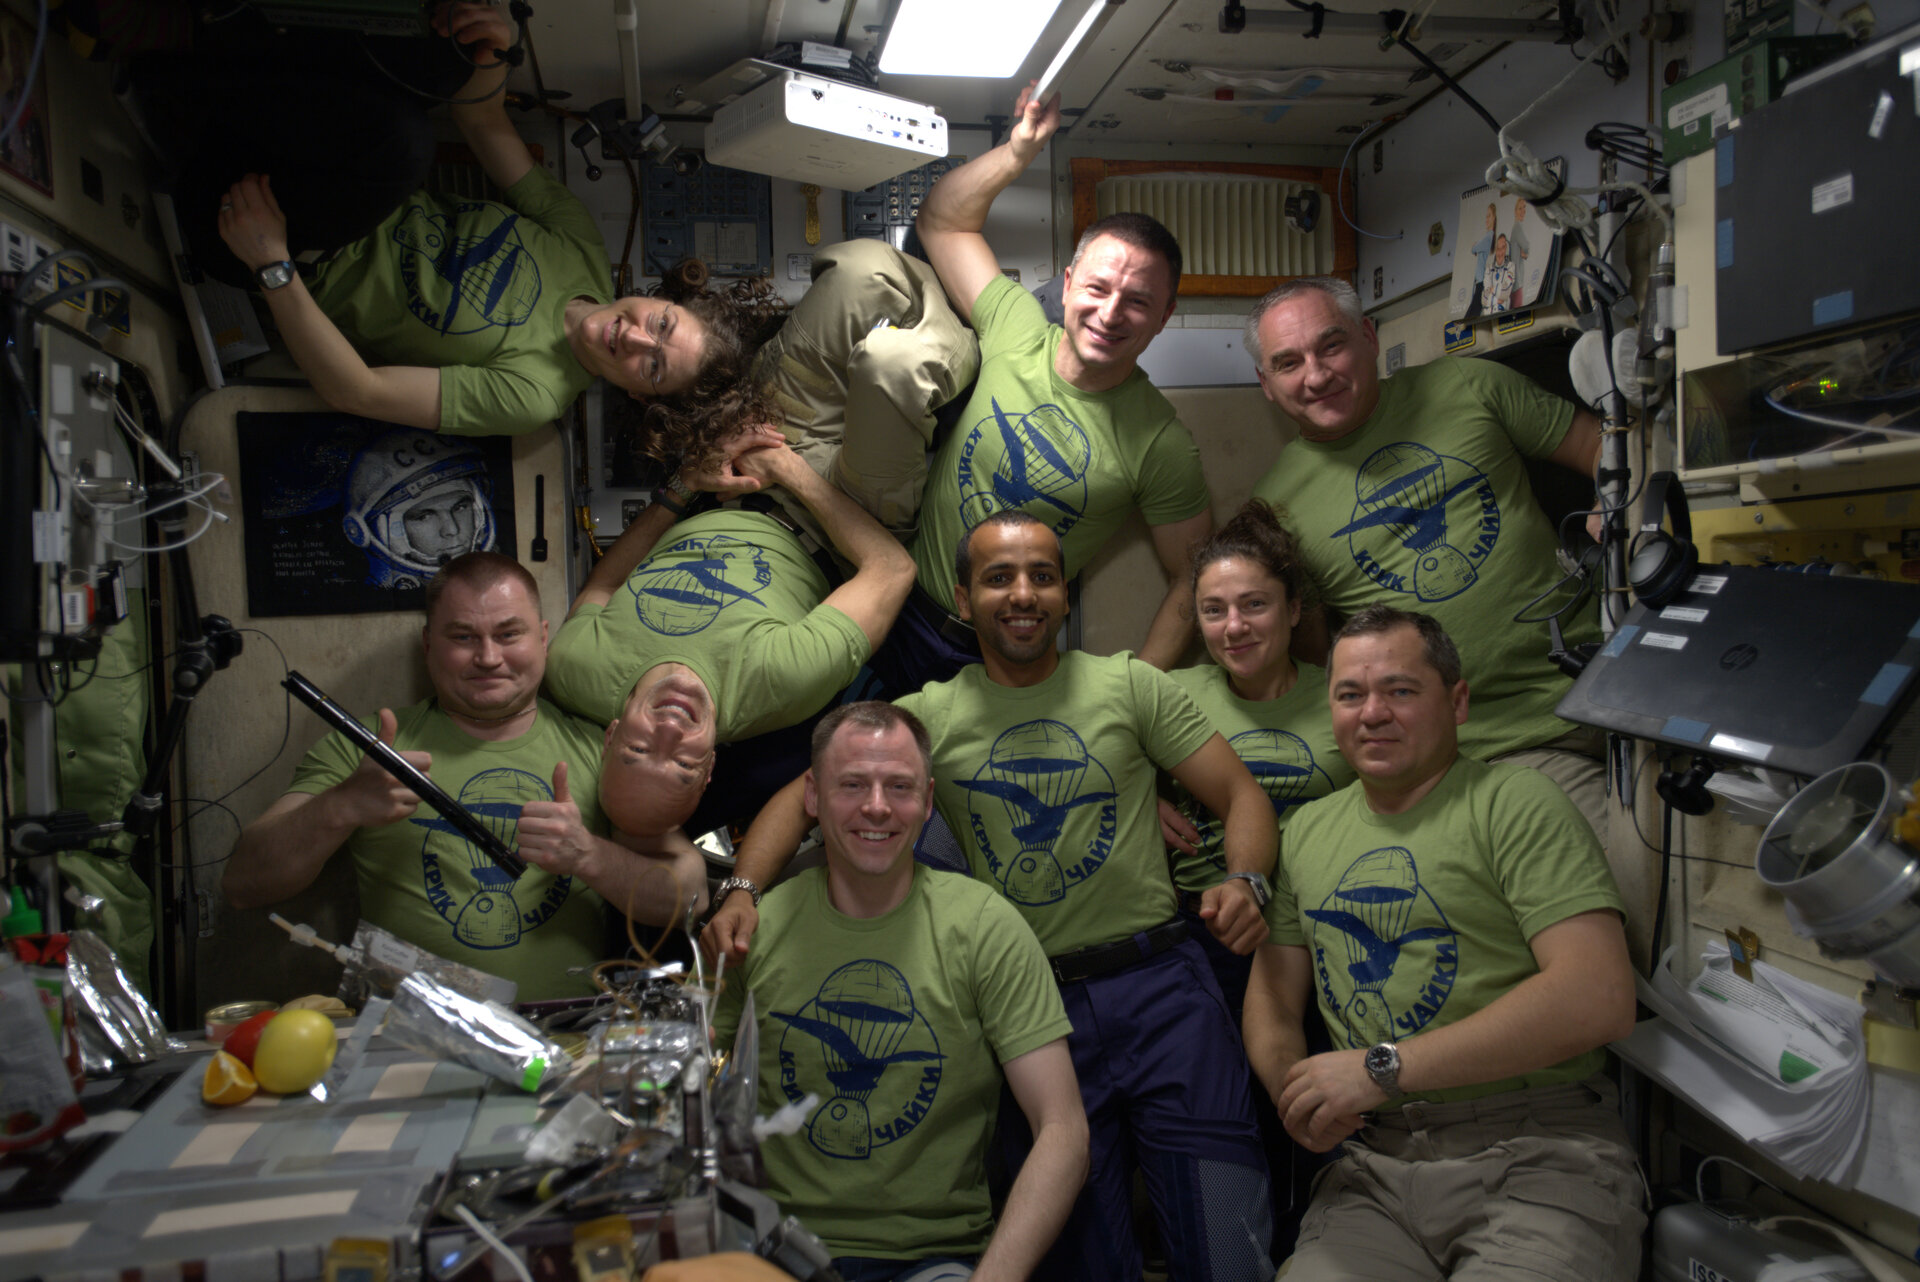 A flock of astronauts